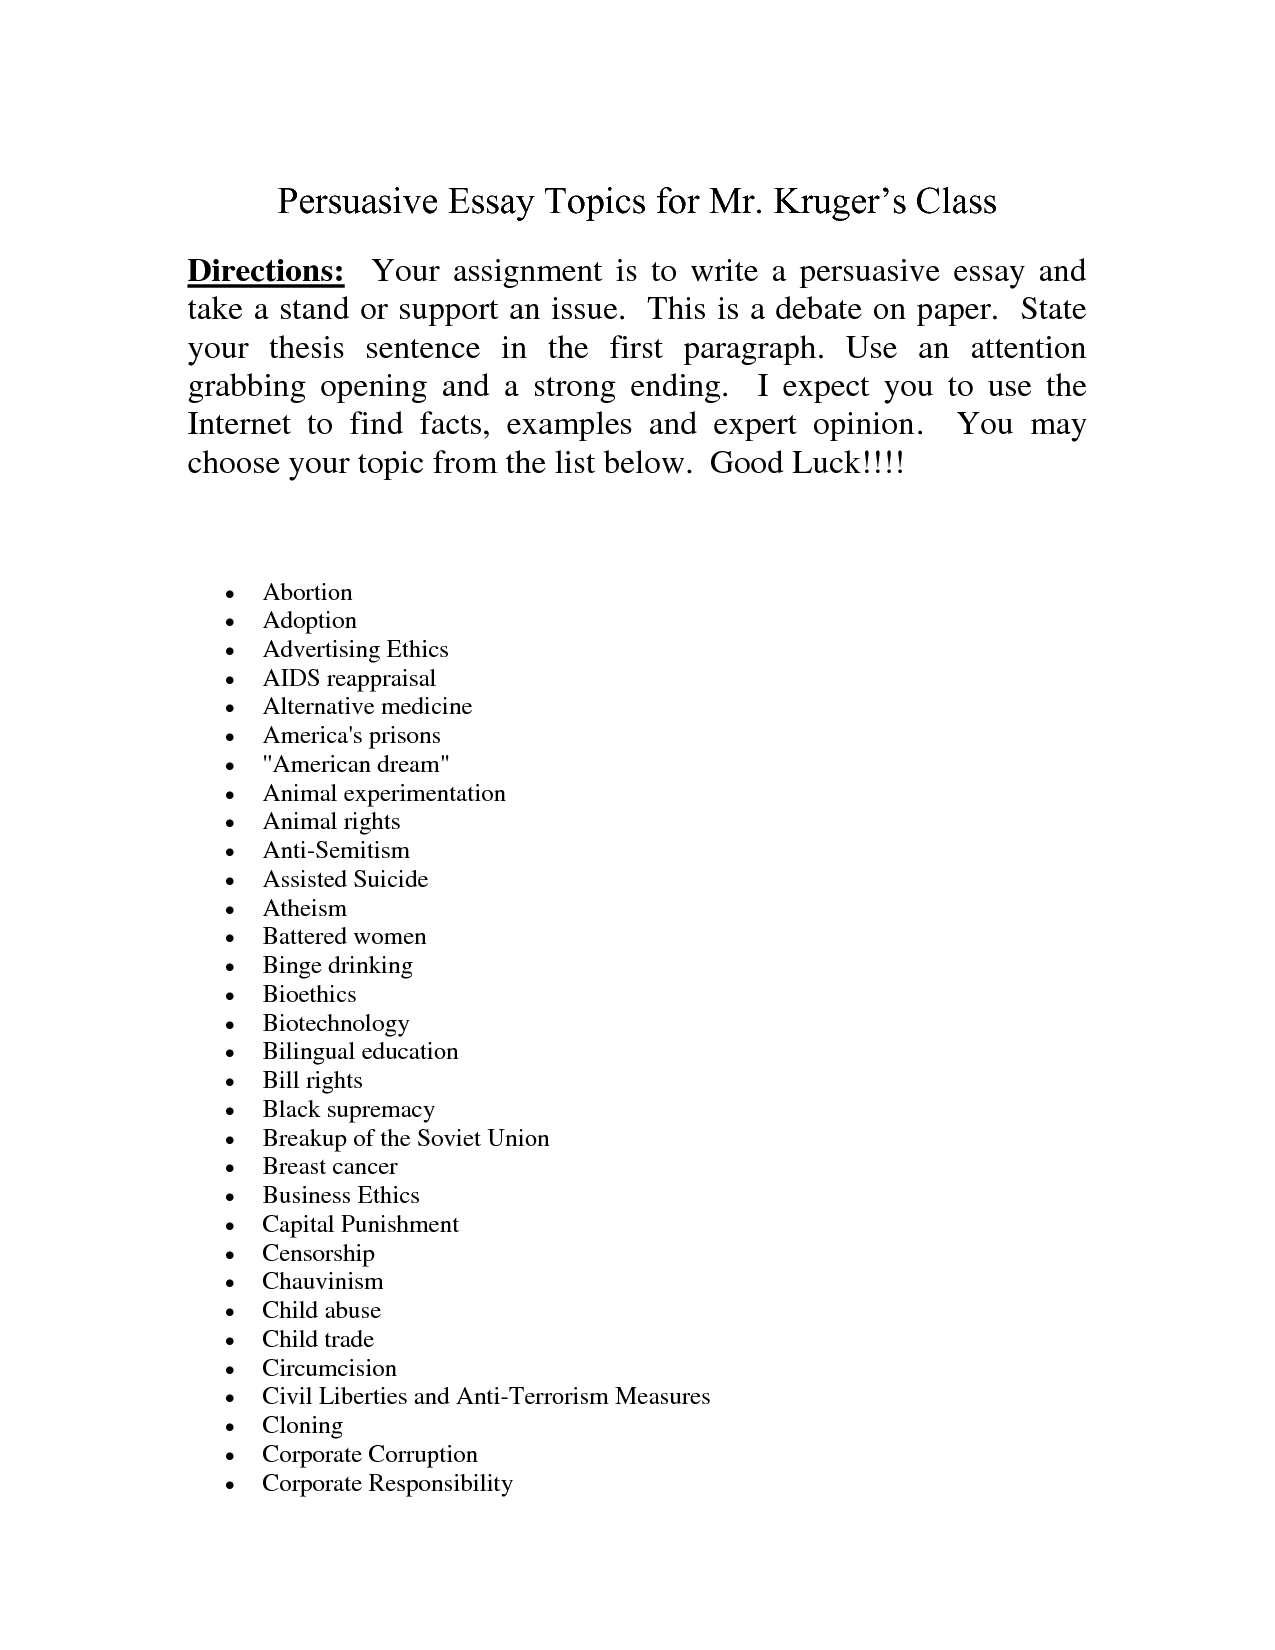 002 College Essays Application Persuasive List Of Essay Topics L Stupendous For High School Students In Hindi Full